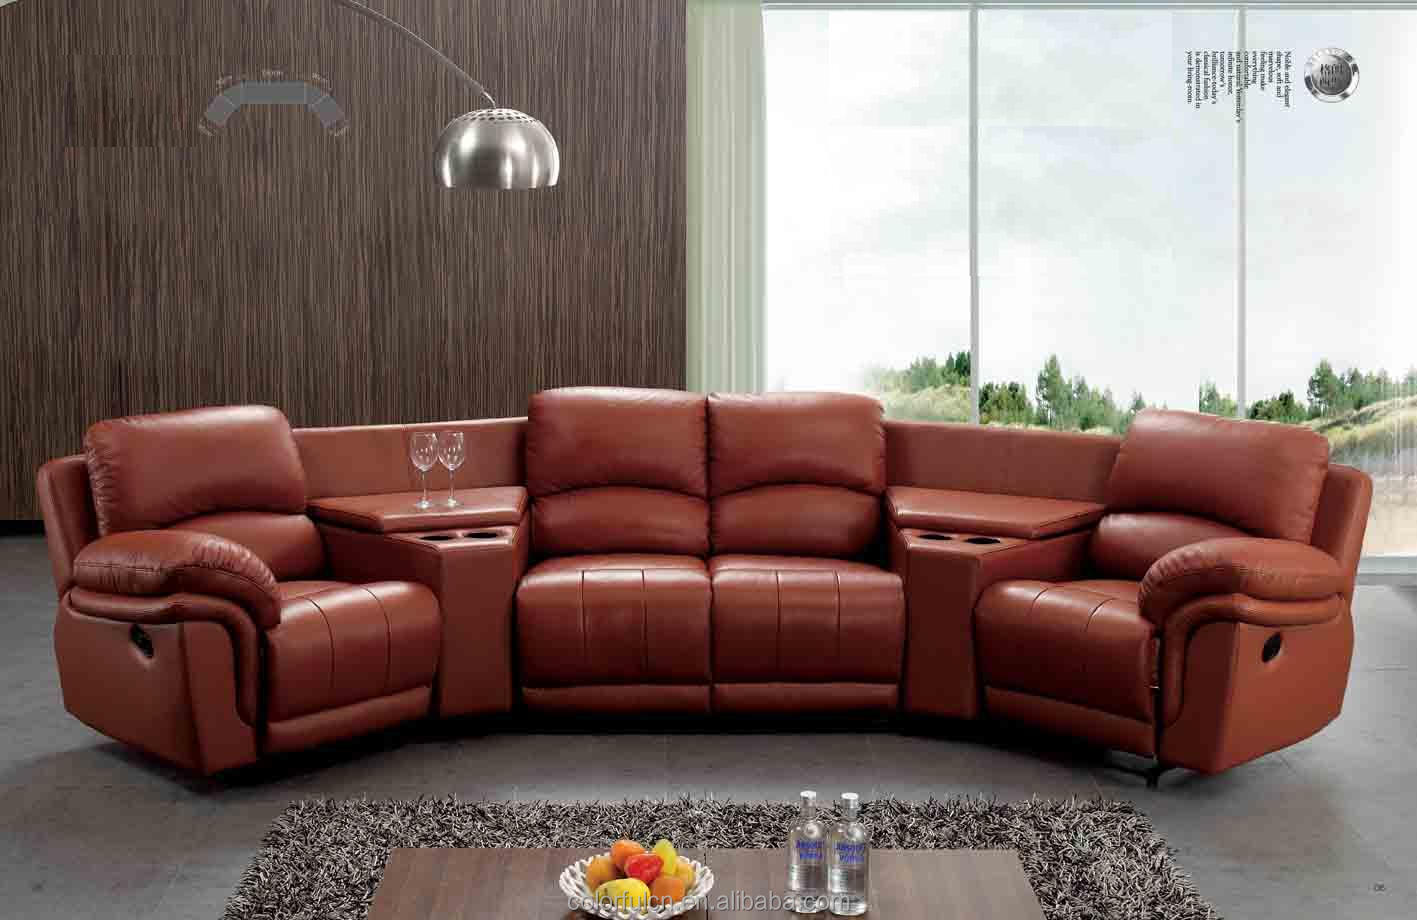 Semi Circle Sectional Sofa New Design